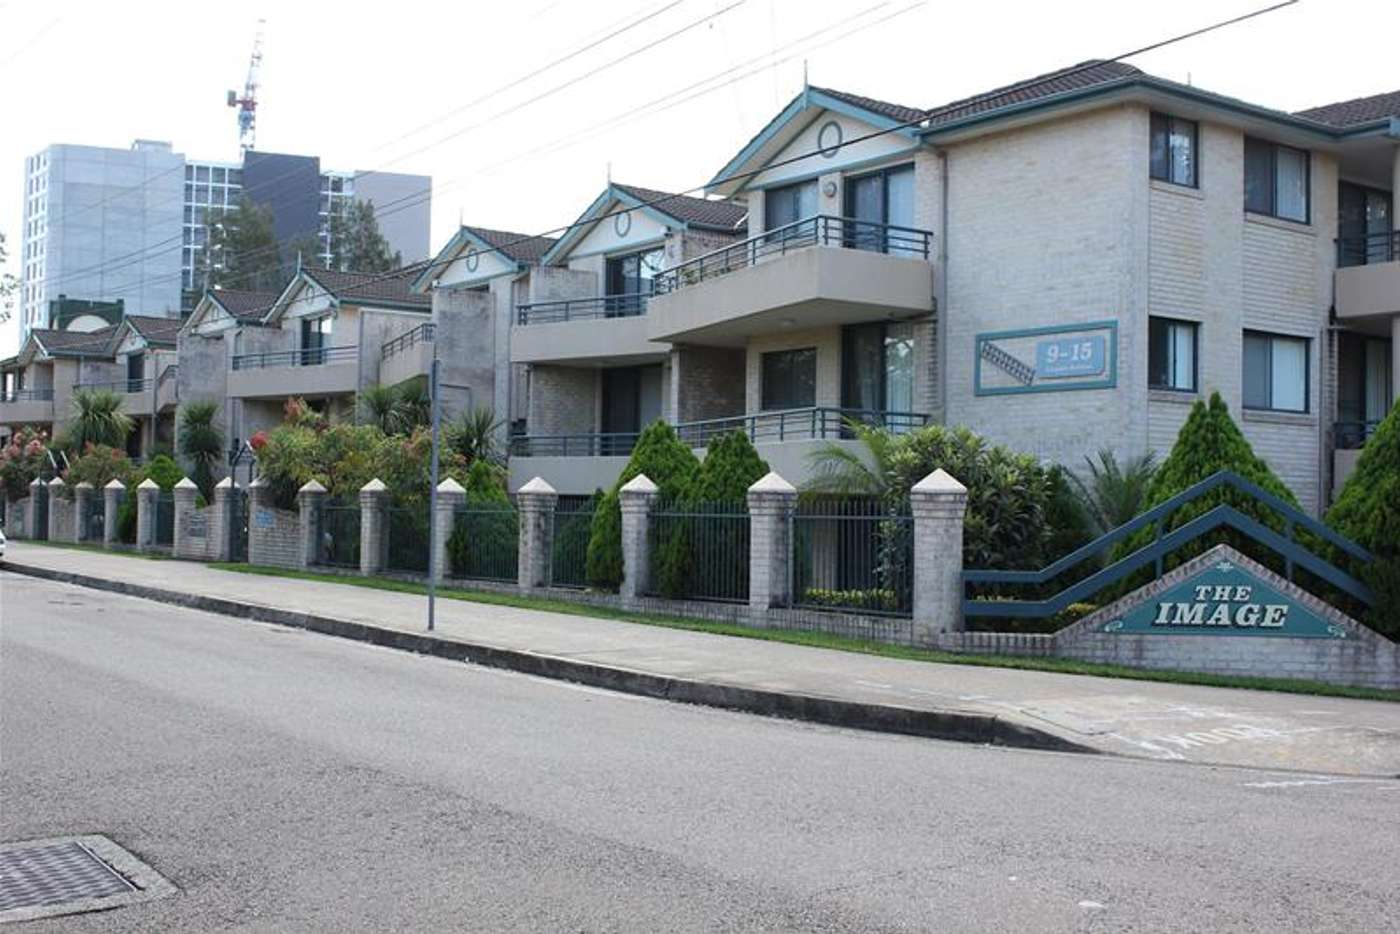 Main view of Homely apartment listing, 7/9 Lloyds Avenue, Carlingford NSW 2118